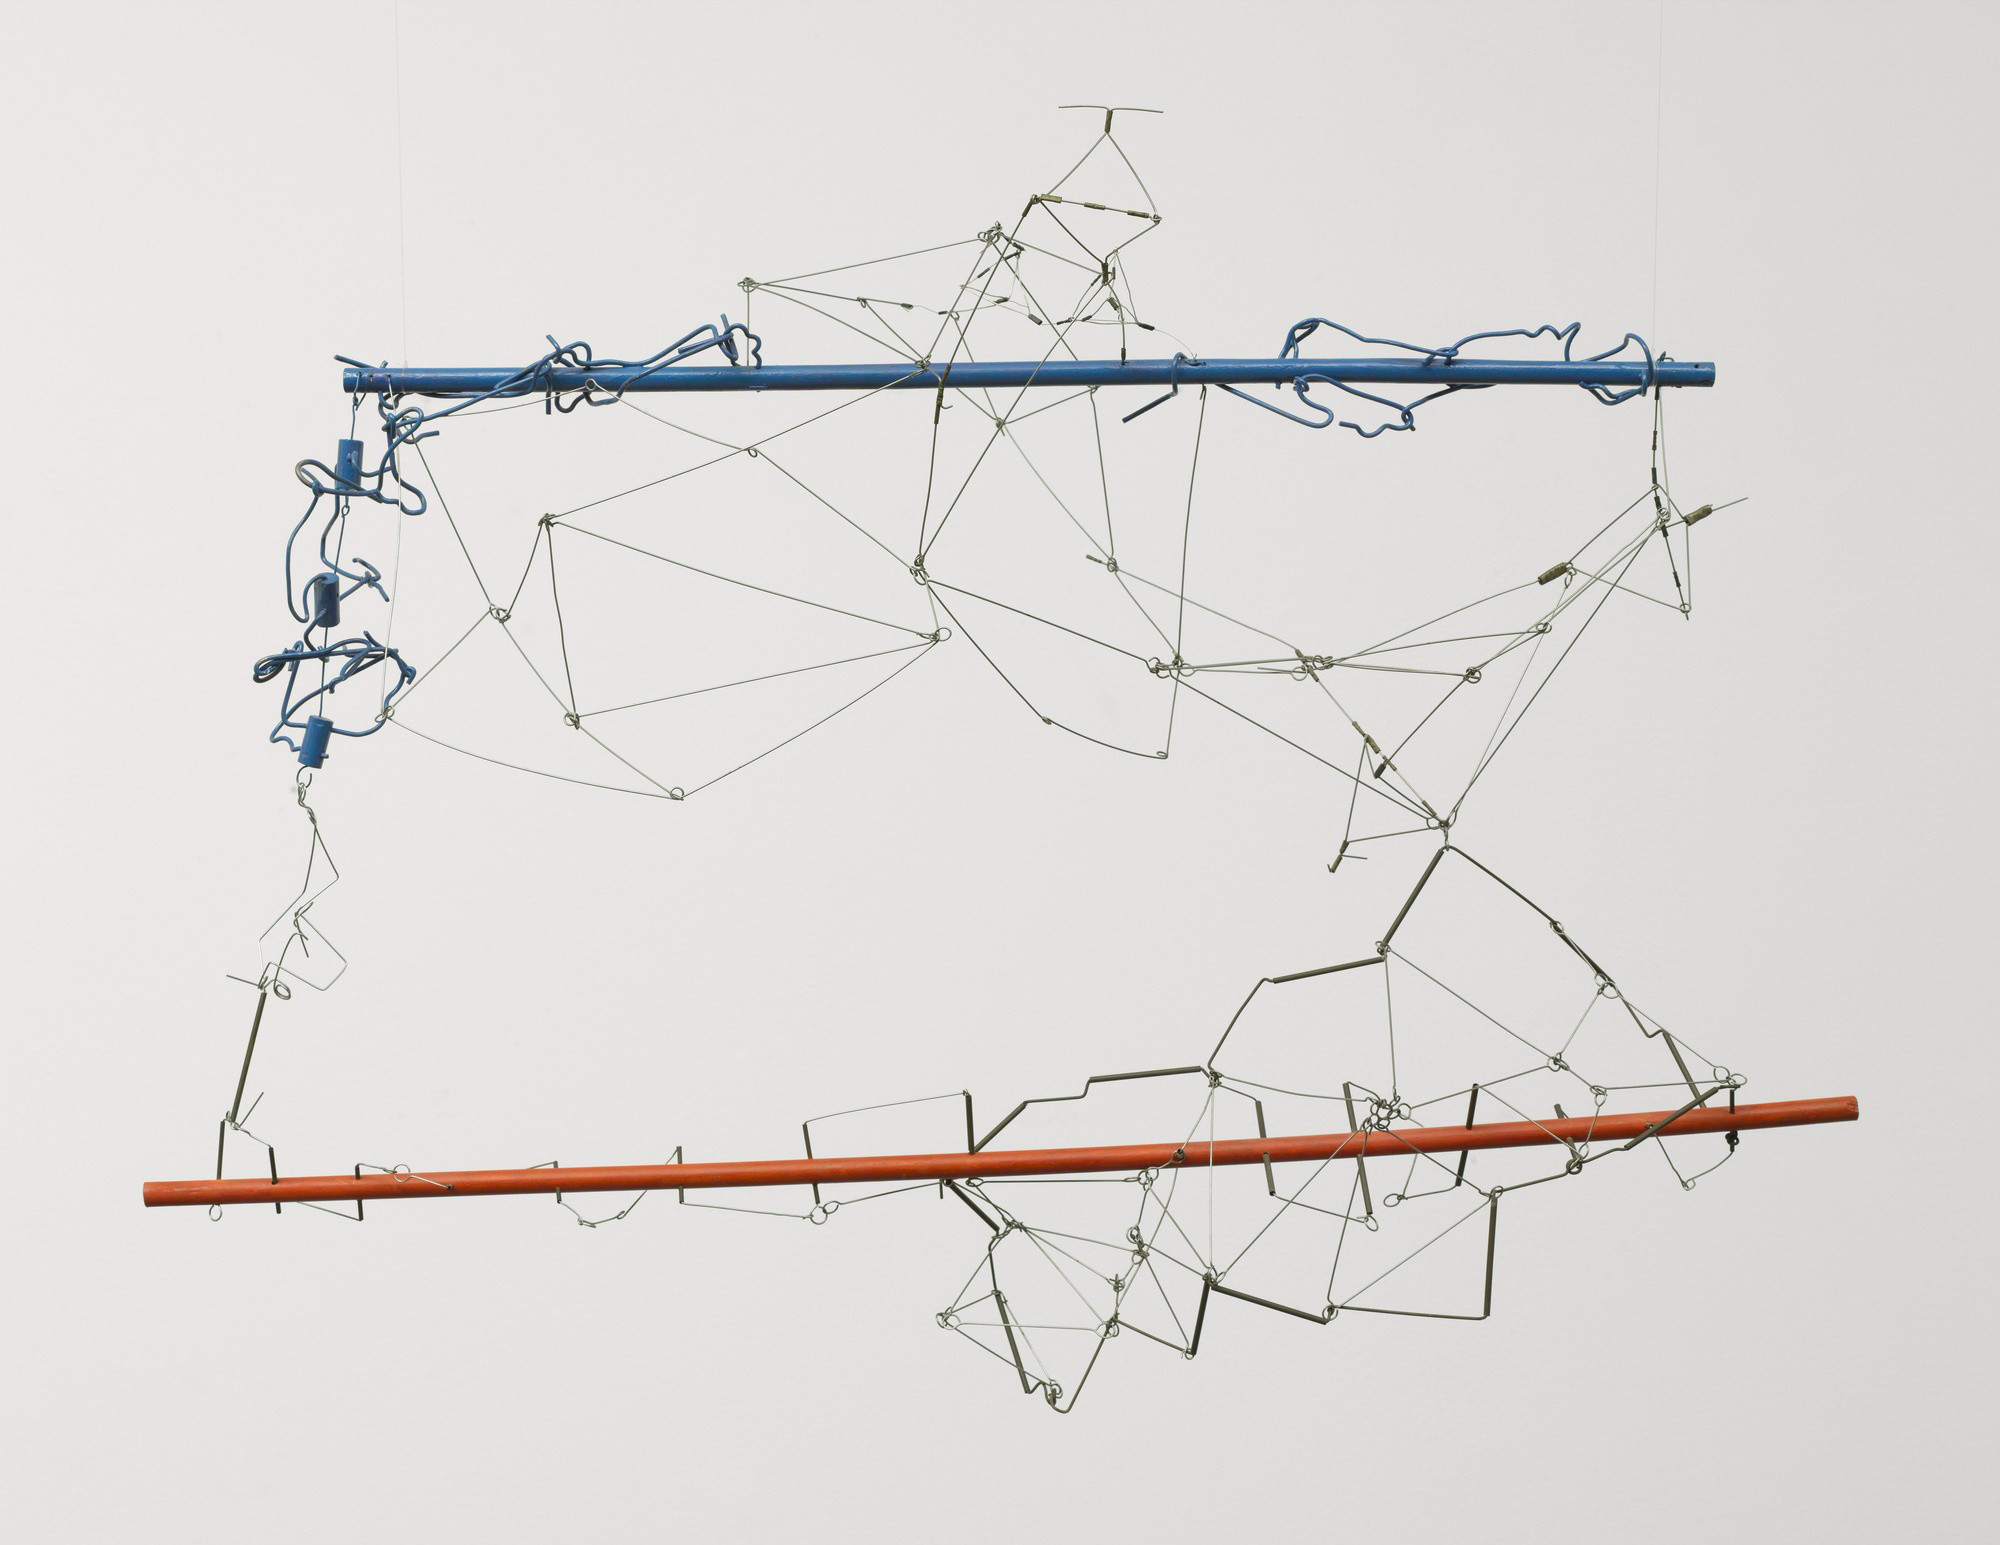 Gego (Gertrud Goldschmidt) (Venezuelan, born Germany. 1912–1994). Drawing without Paper 84/25 and 84/26. 1984 and 1987. Enamel on wood and stainless steel wire, 23 5/8 x 34 5/8 x 16 3/4″ (60 x 88 x 40 cm). The Museum of Modern Art, NY. Gift of Patricia Phelps de Cisneros in honor of Susan and Glenn Lowry. Copyright © 2017 Fundación Gego.